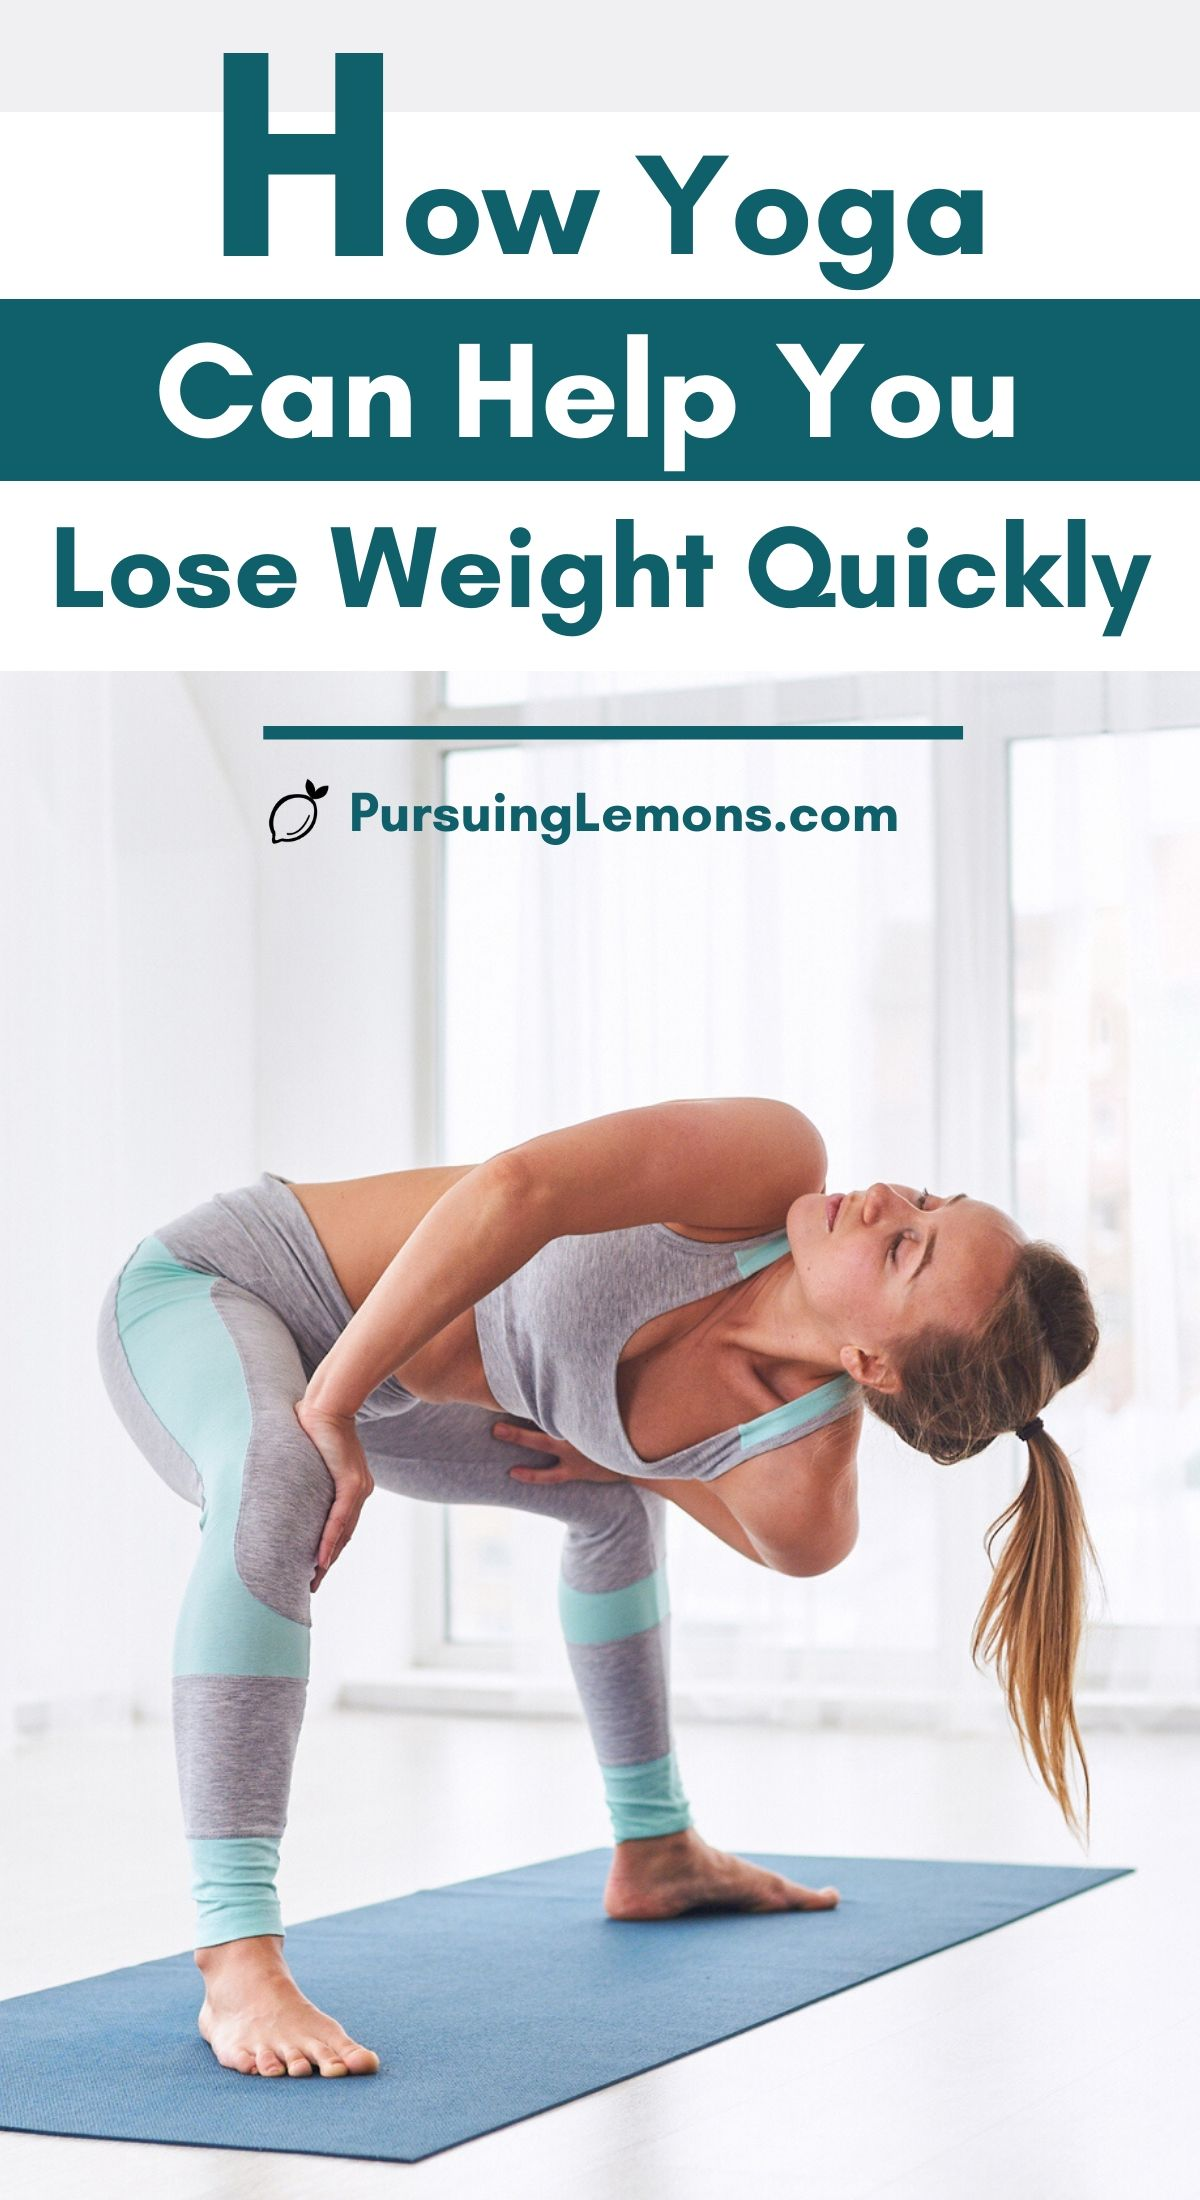 How Yoga Can Help You Lose Weight Quickly | Yoga help you lose weight directly and indirectly. It changes your eating habits, burns calories, and contributes to weight loss in the long term. Let's see how yoga is great for weight loss! #yogaforweightloss #yoga #yogabenefits #weightloss